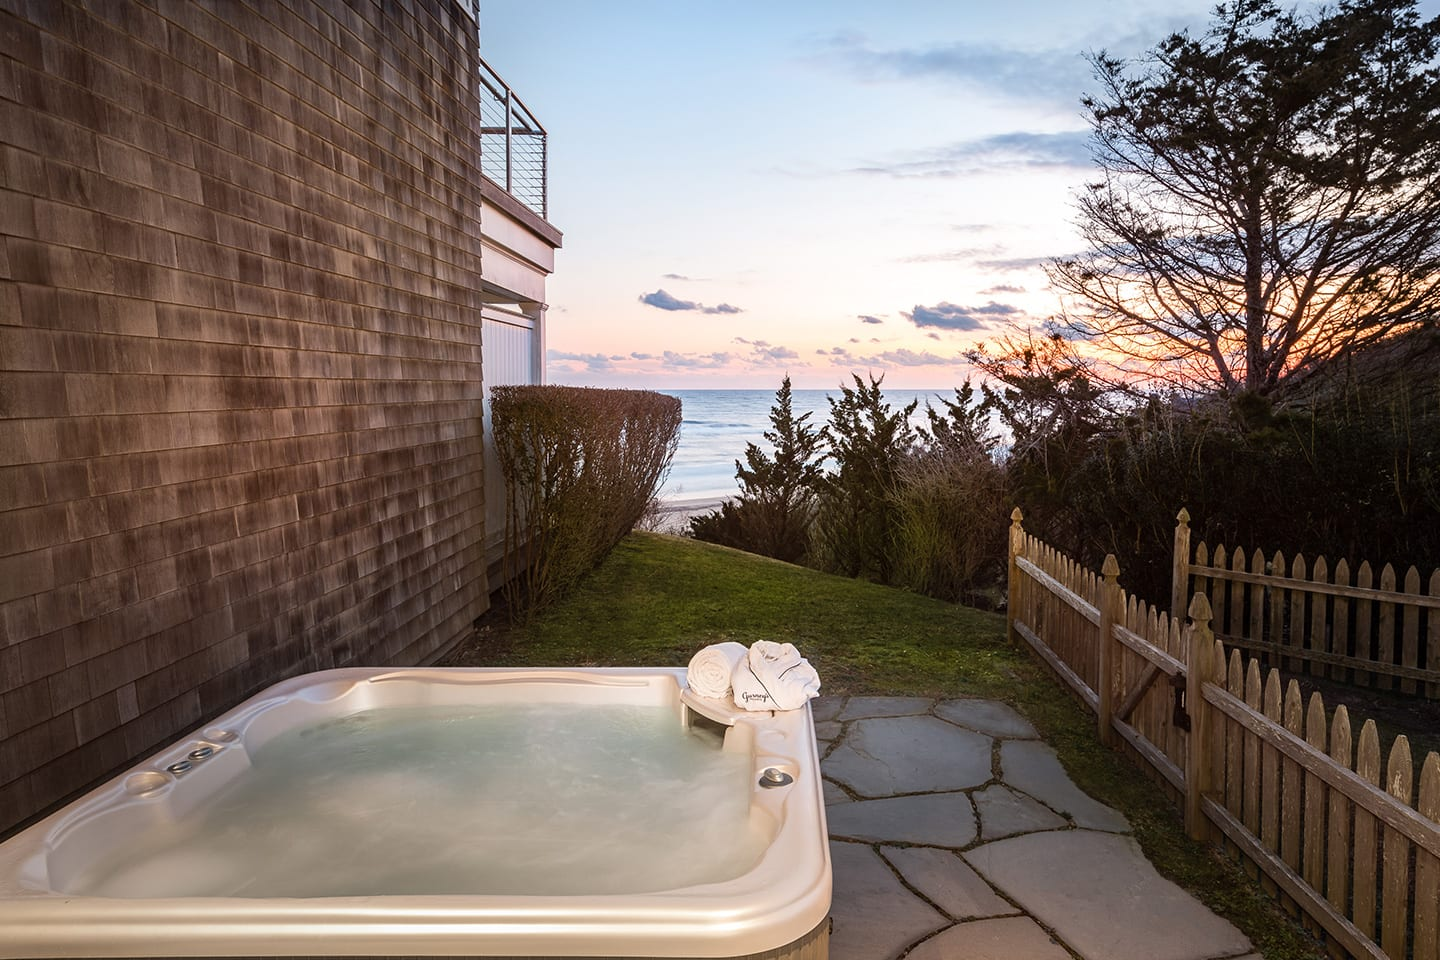 Hilltop 10 Fenced in side patio with a jacuzzi and views of the ocean